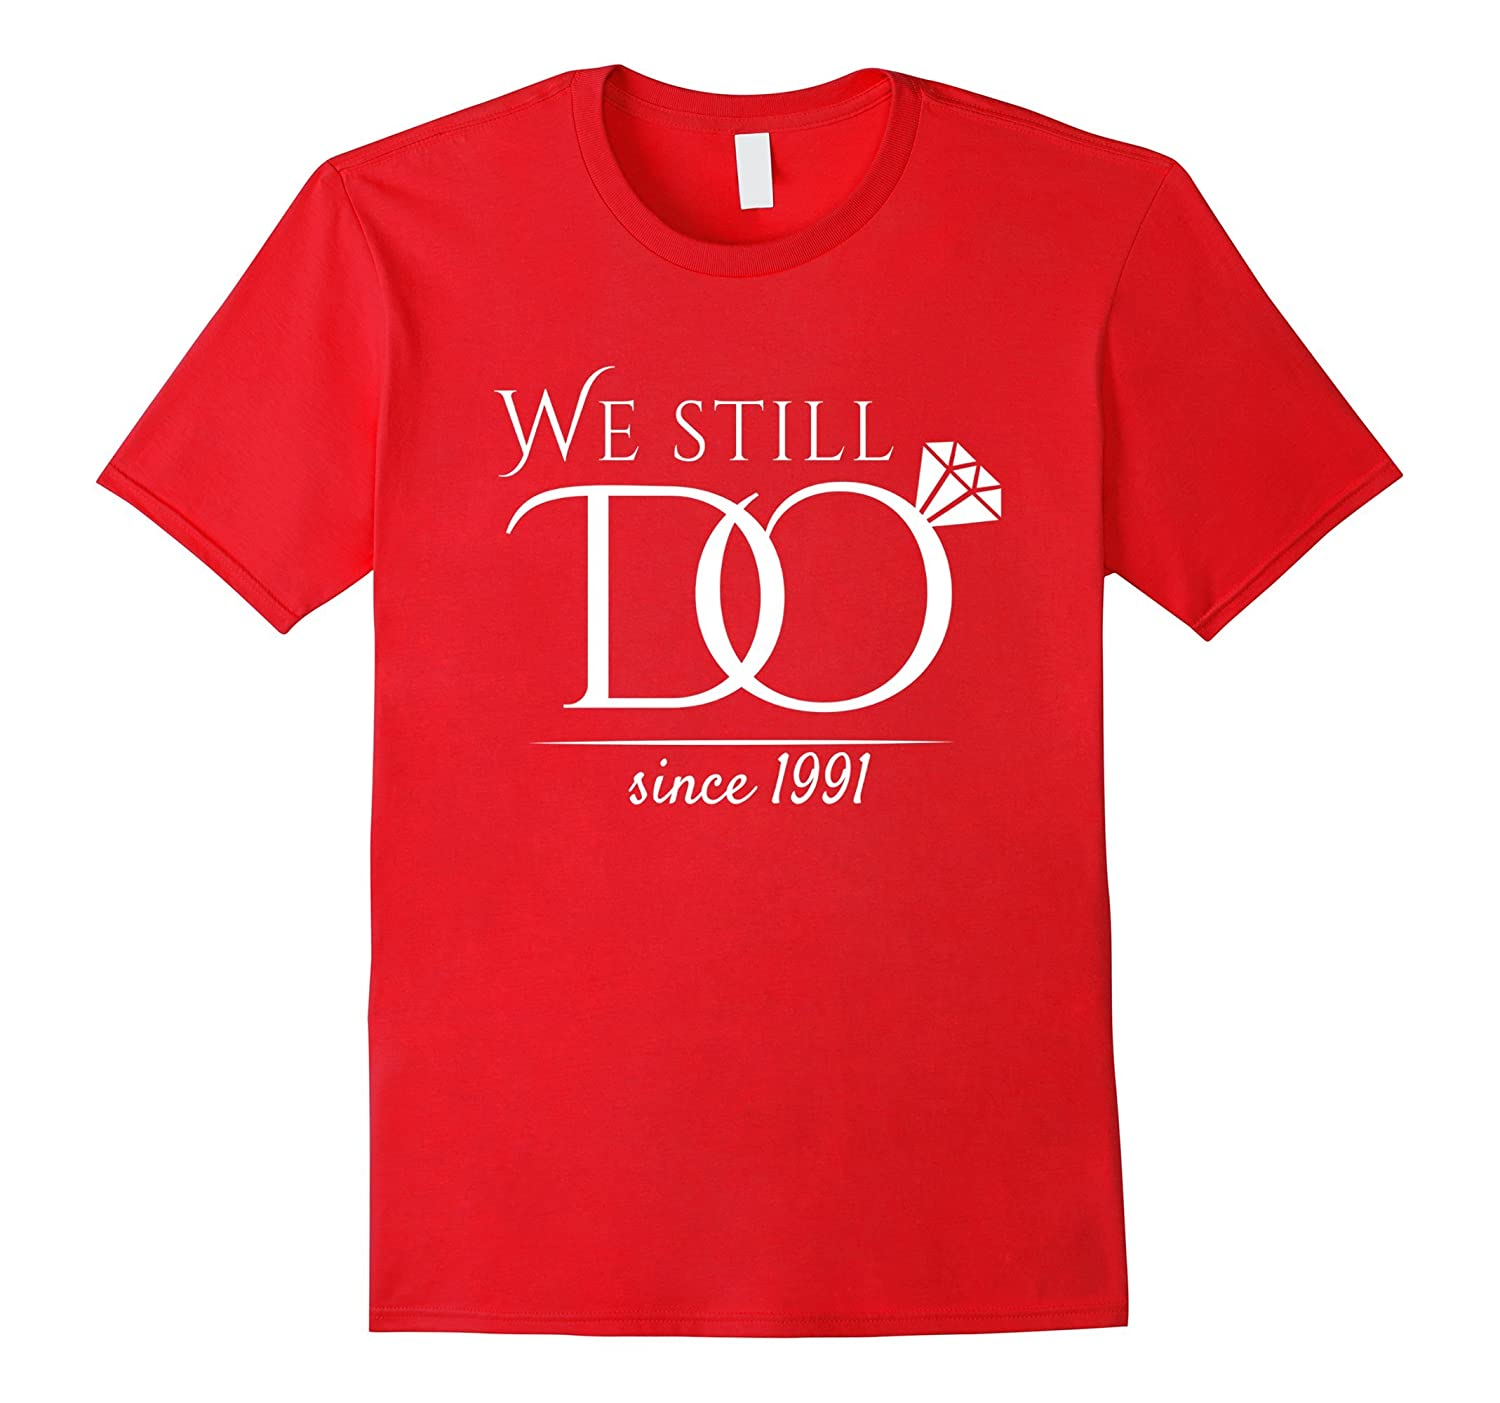 26th Wedding Anniversary T-Shirt Funny For Married In 1991 W-TJ